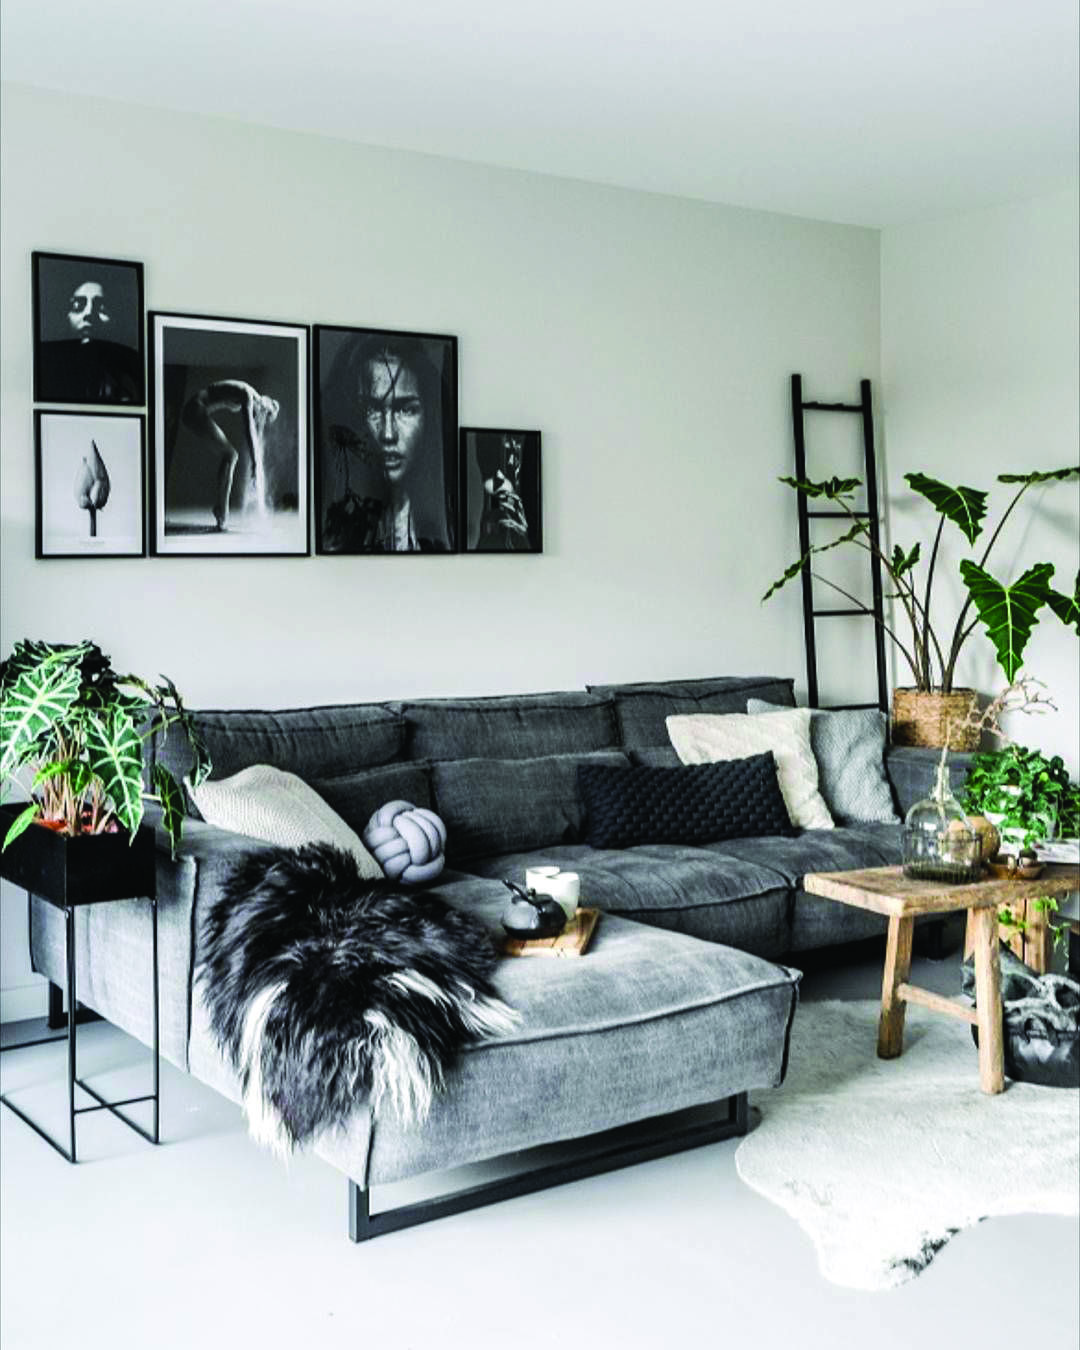 Stunning Gray Living Room Suggestions In 2020 Small Modern Living Room Small Apartment Living Room Living Room Decor Apartment